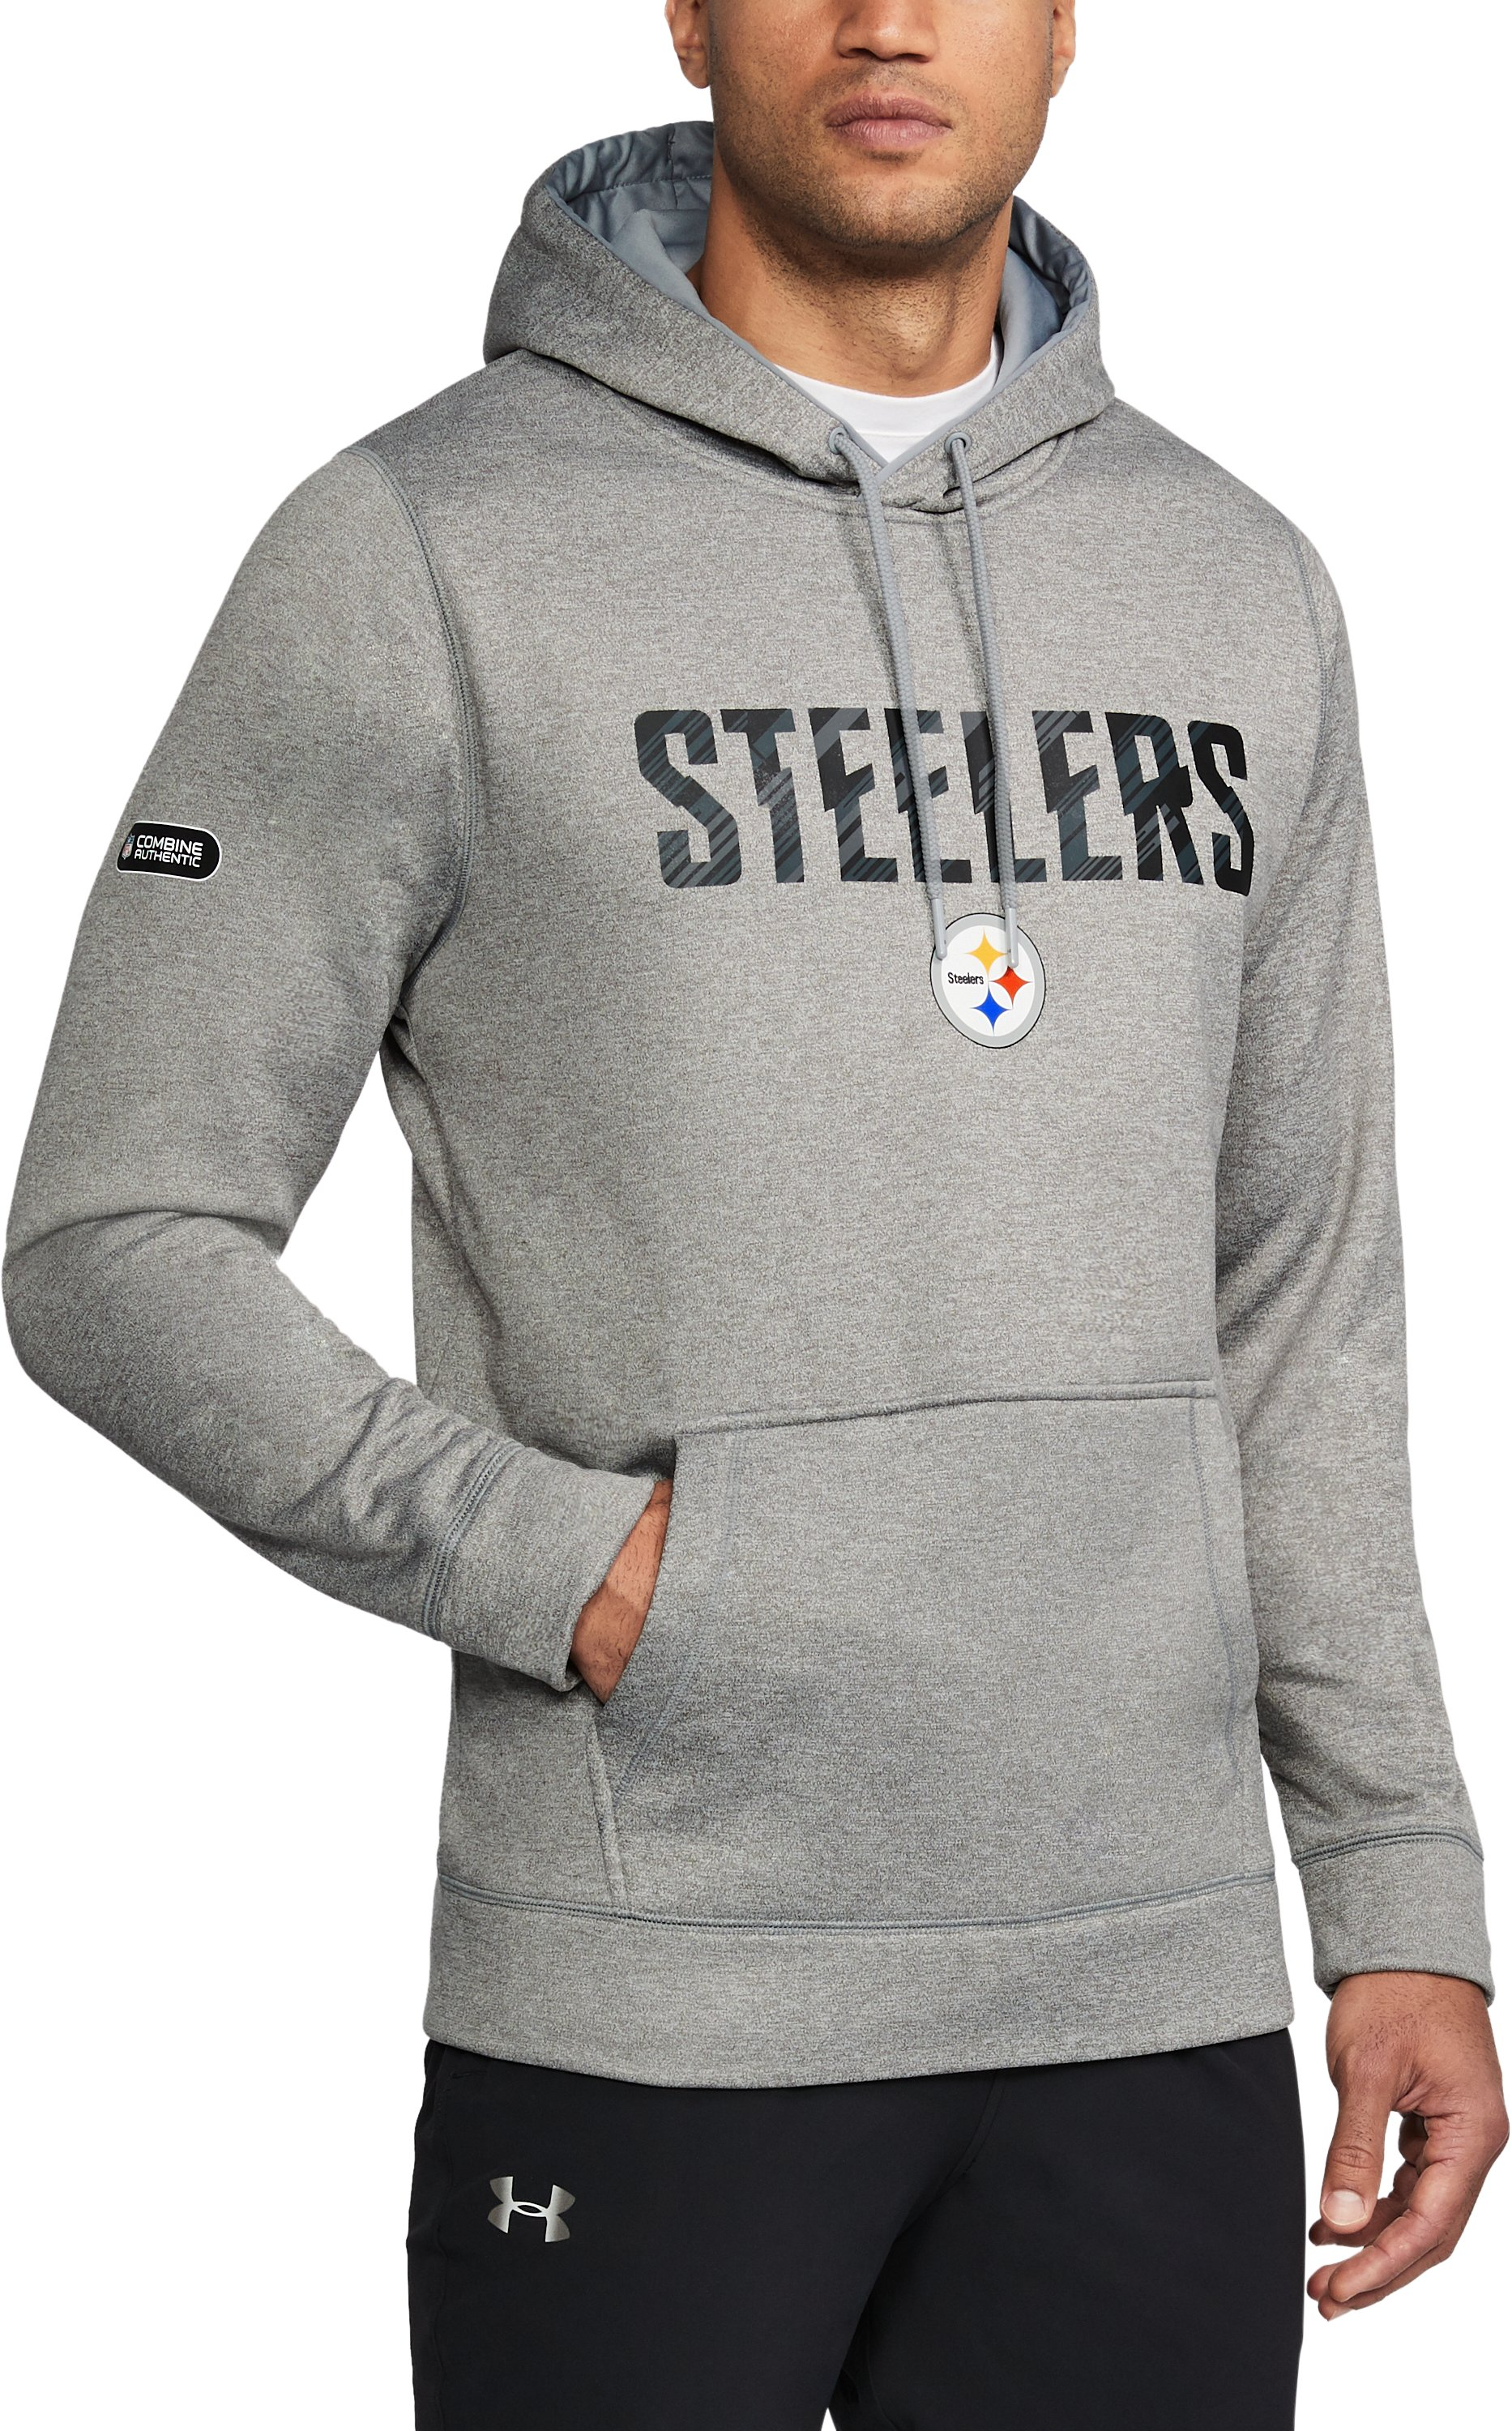 , Pittsburgh Steelers, zoomed image